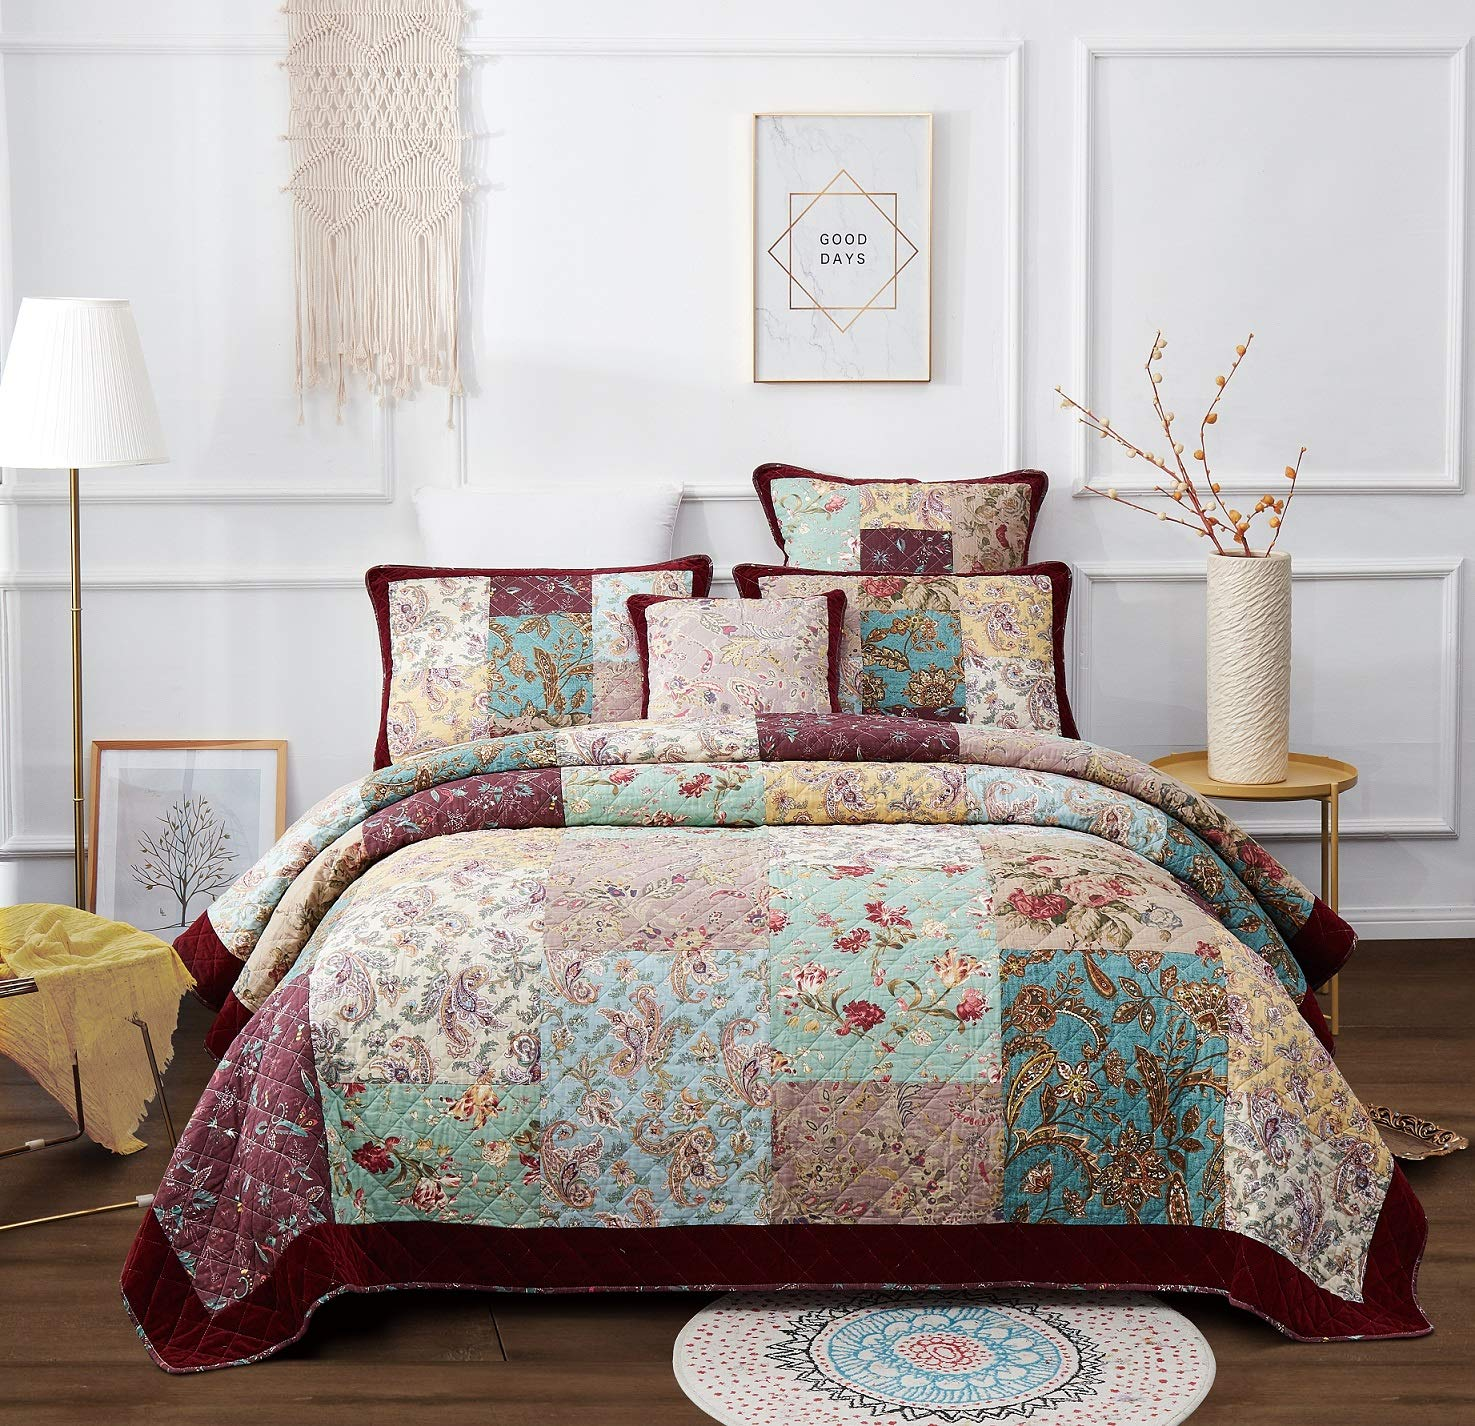 DaDa Bedding Bohemian Patchwork Bedspread - Burgundy Wine Velvety Trim - Vintage Floral Roses Paisley - Bright Vibrant Multi-Colorful Quilted Set - Queen - 3-Pieces